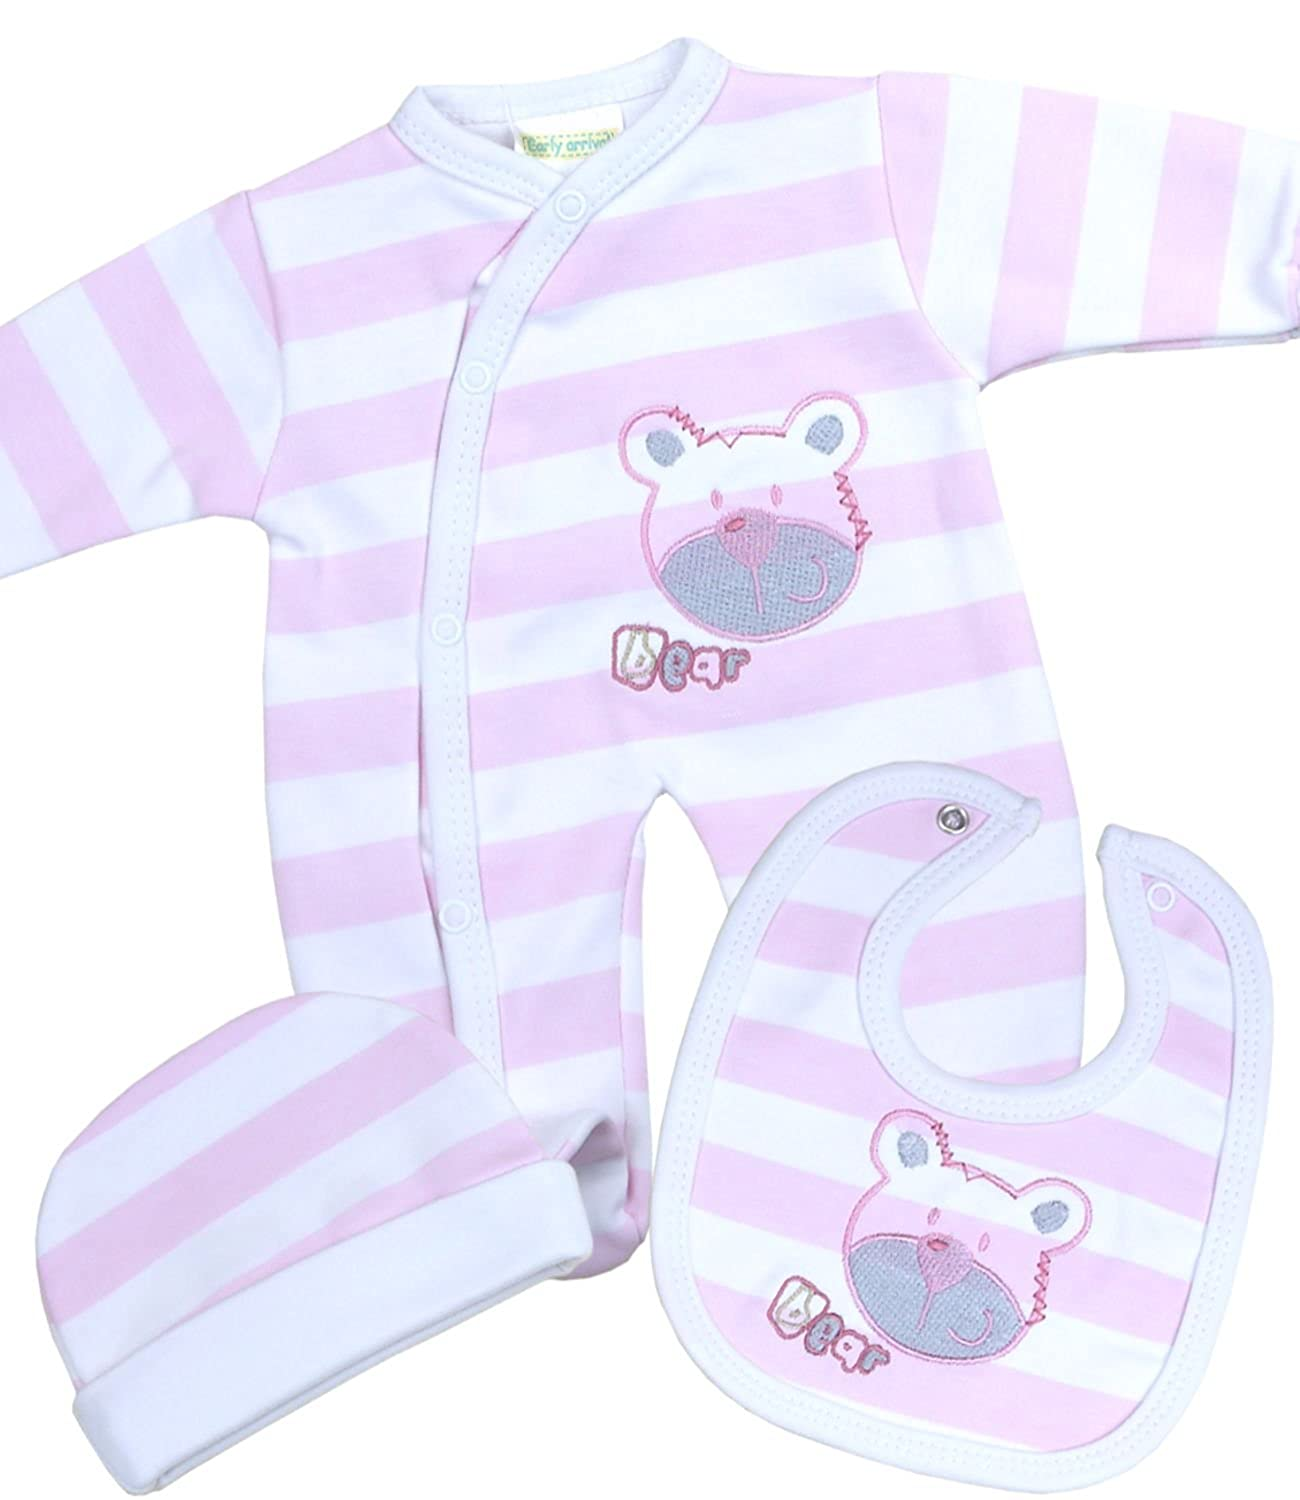 Babyprem Baby Set Sleepsuit Bib Hat Clothes Teddy Premature 1.5lb - 3 Months BEE020